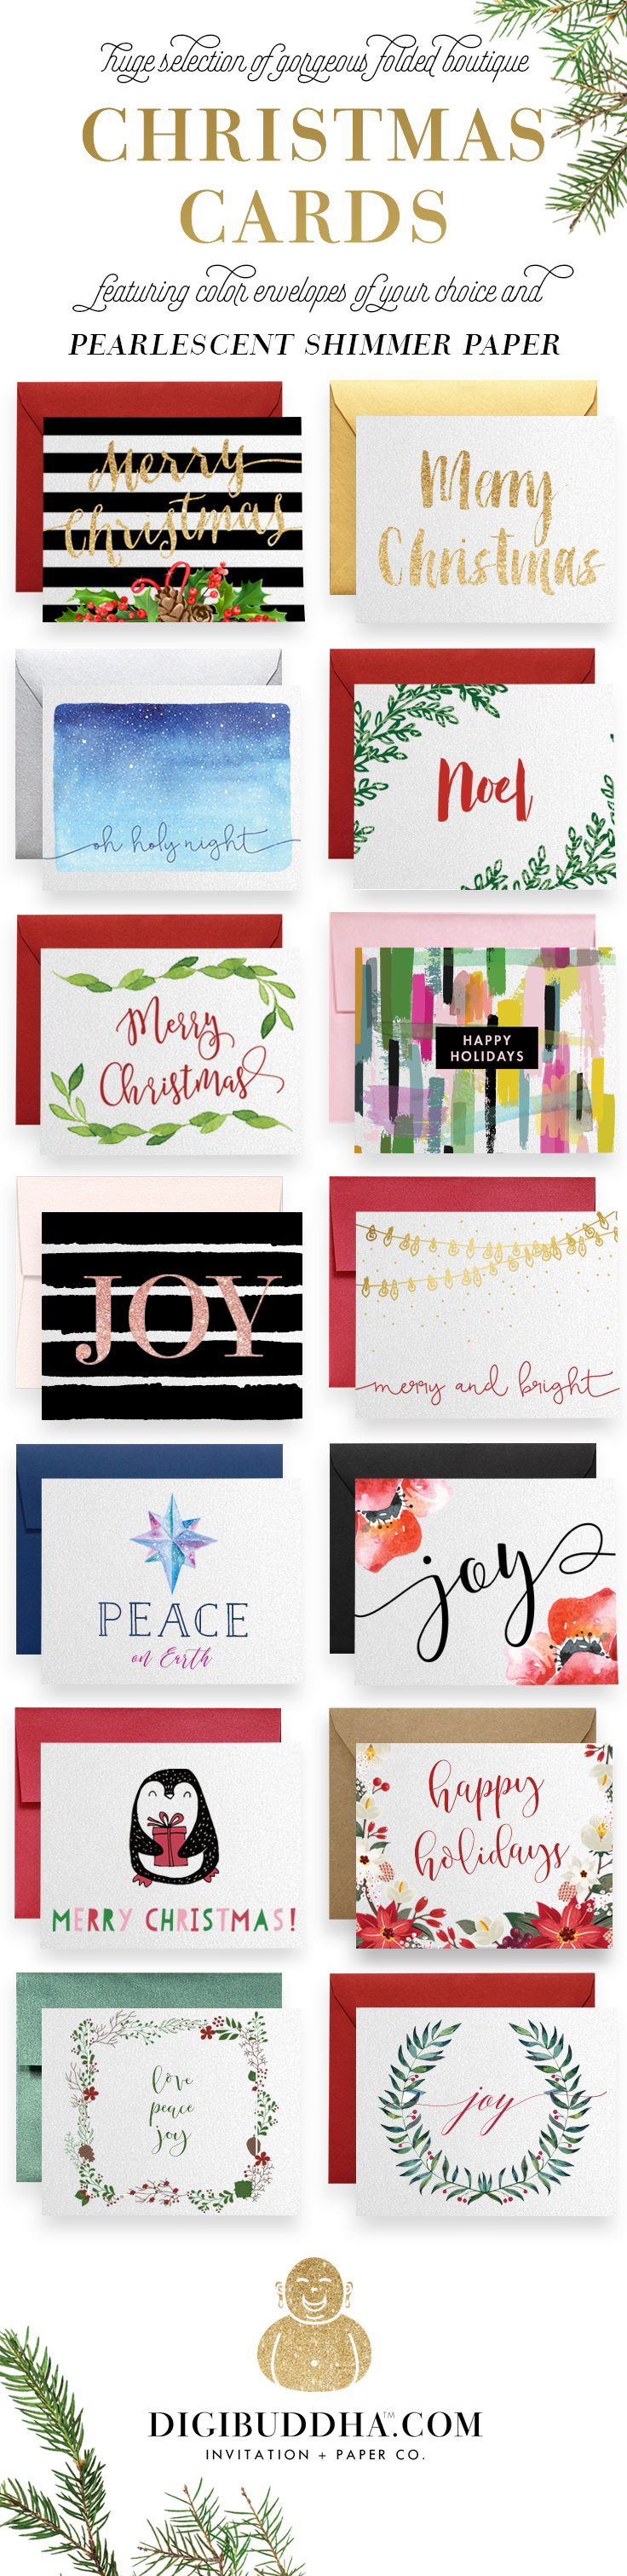 Gorgeous boutique quality folded Christmas cards featuring color